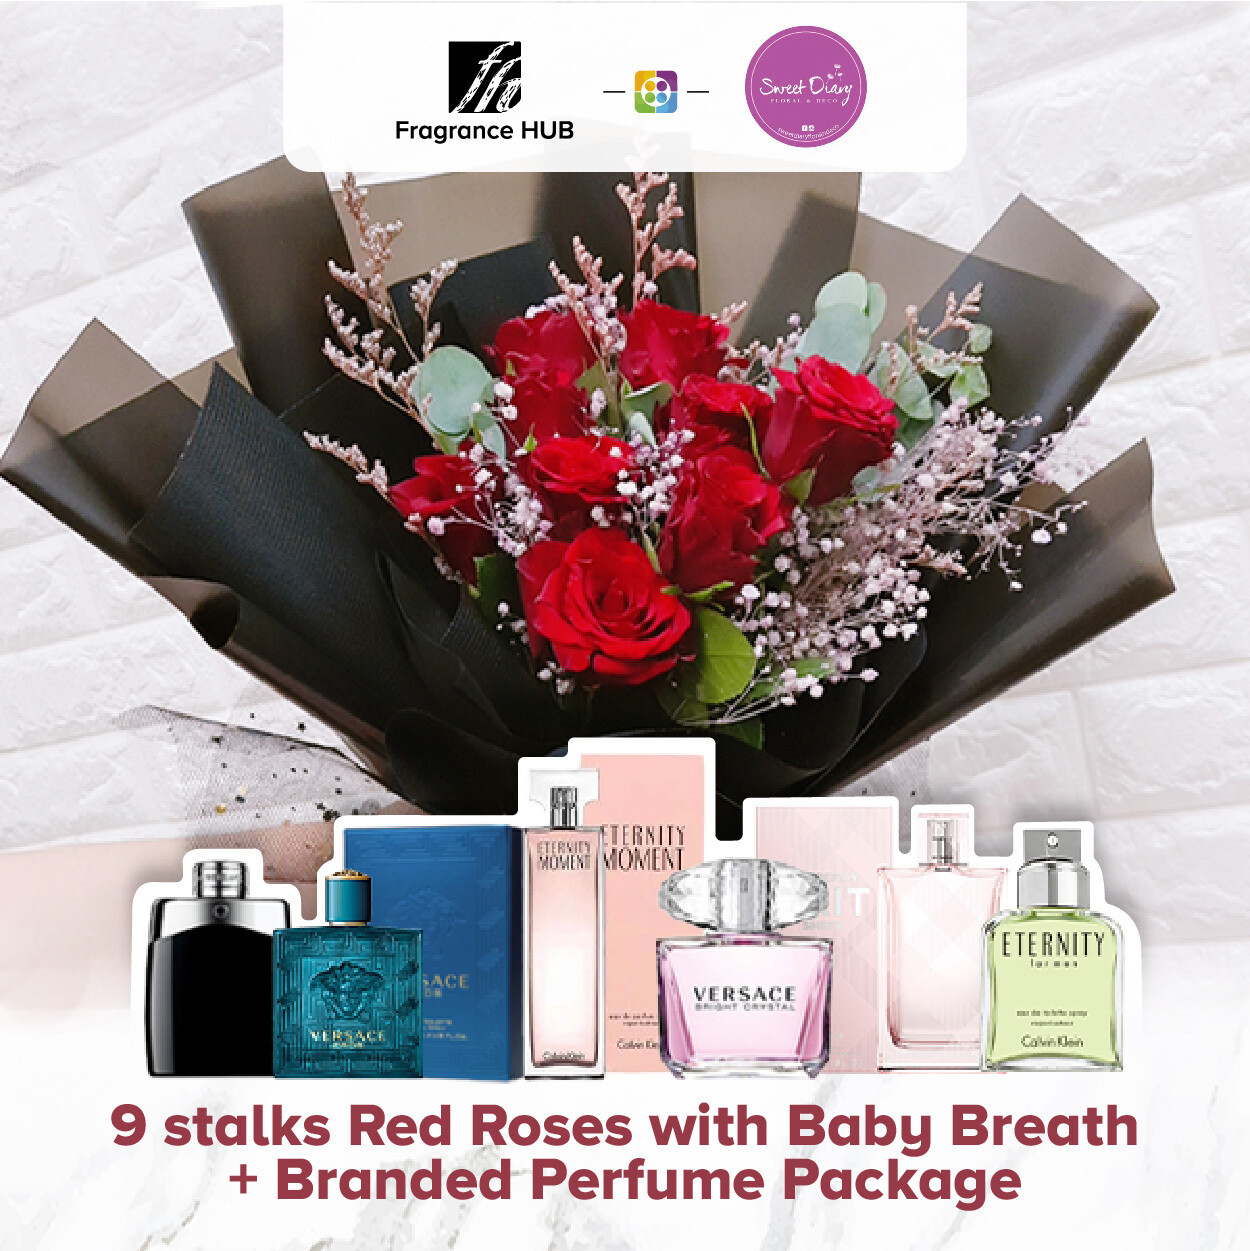 9 stalks Red Roses with Baby Breath + Fragrance Hub Branded Perfume (By: Sweet Dairy from Puchong)